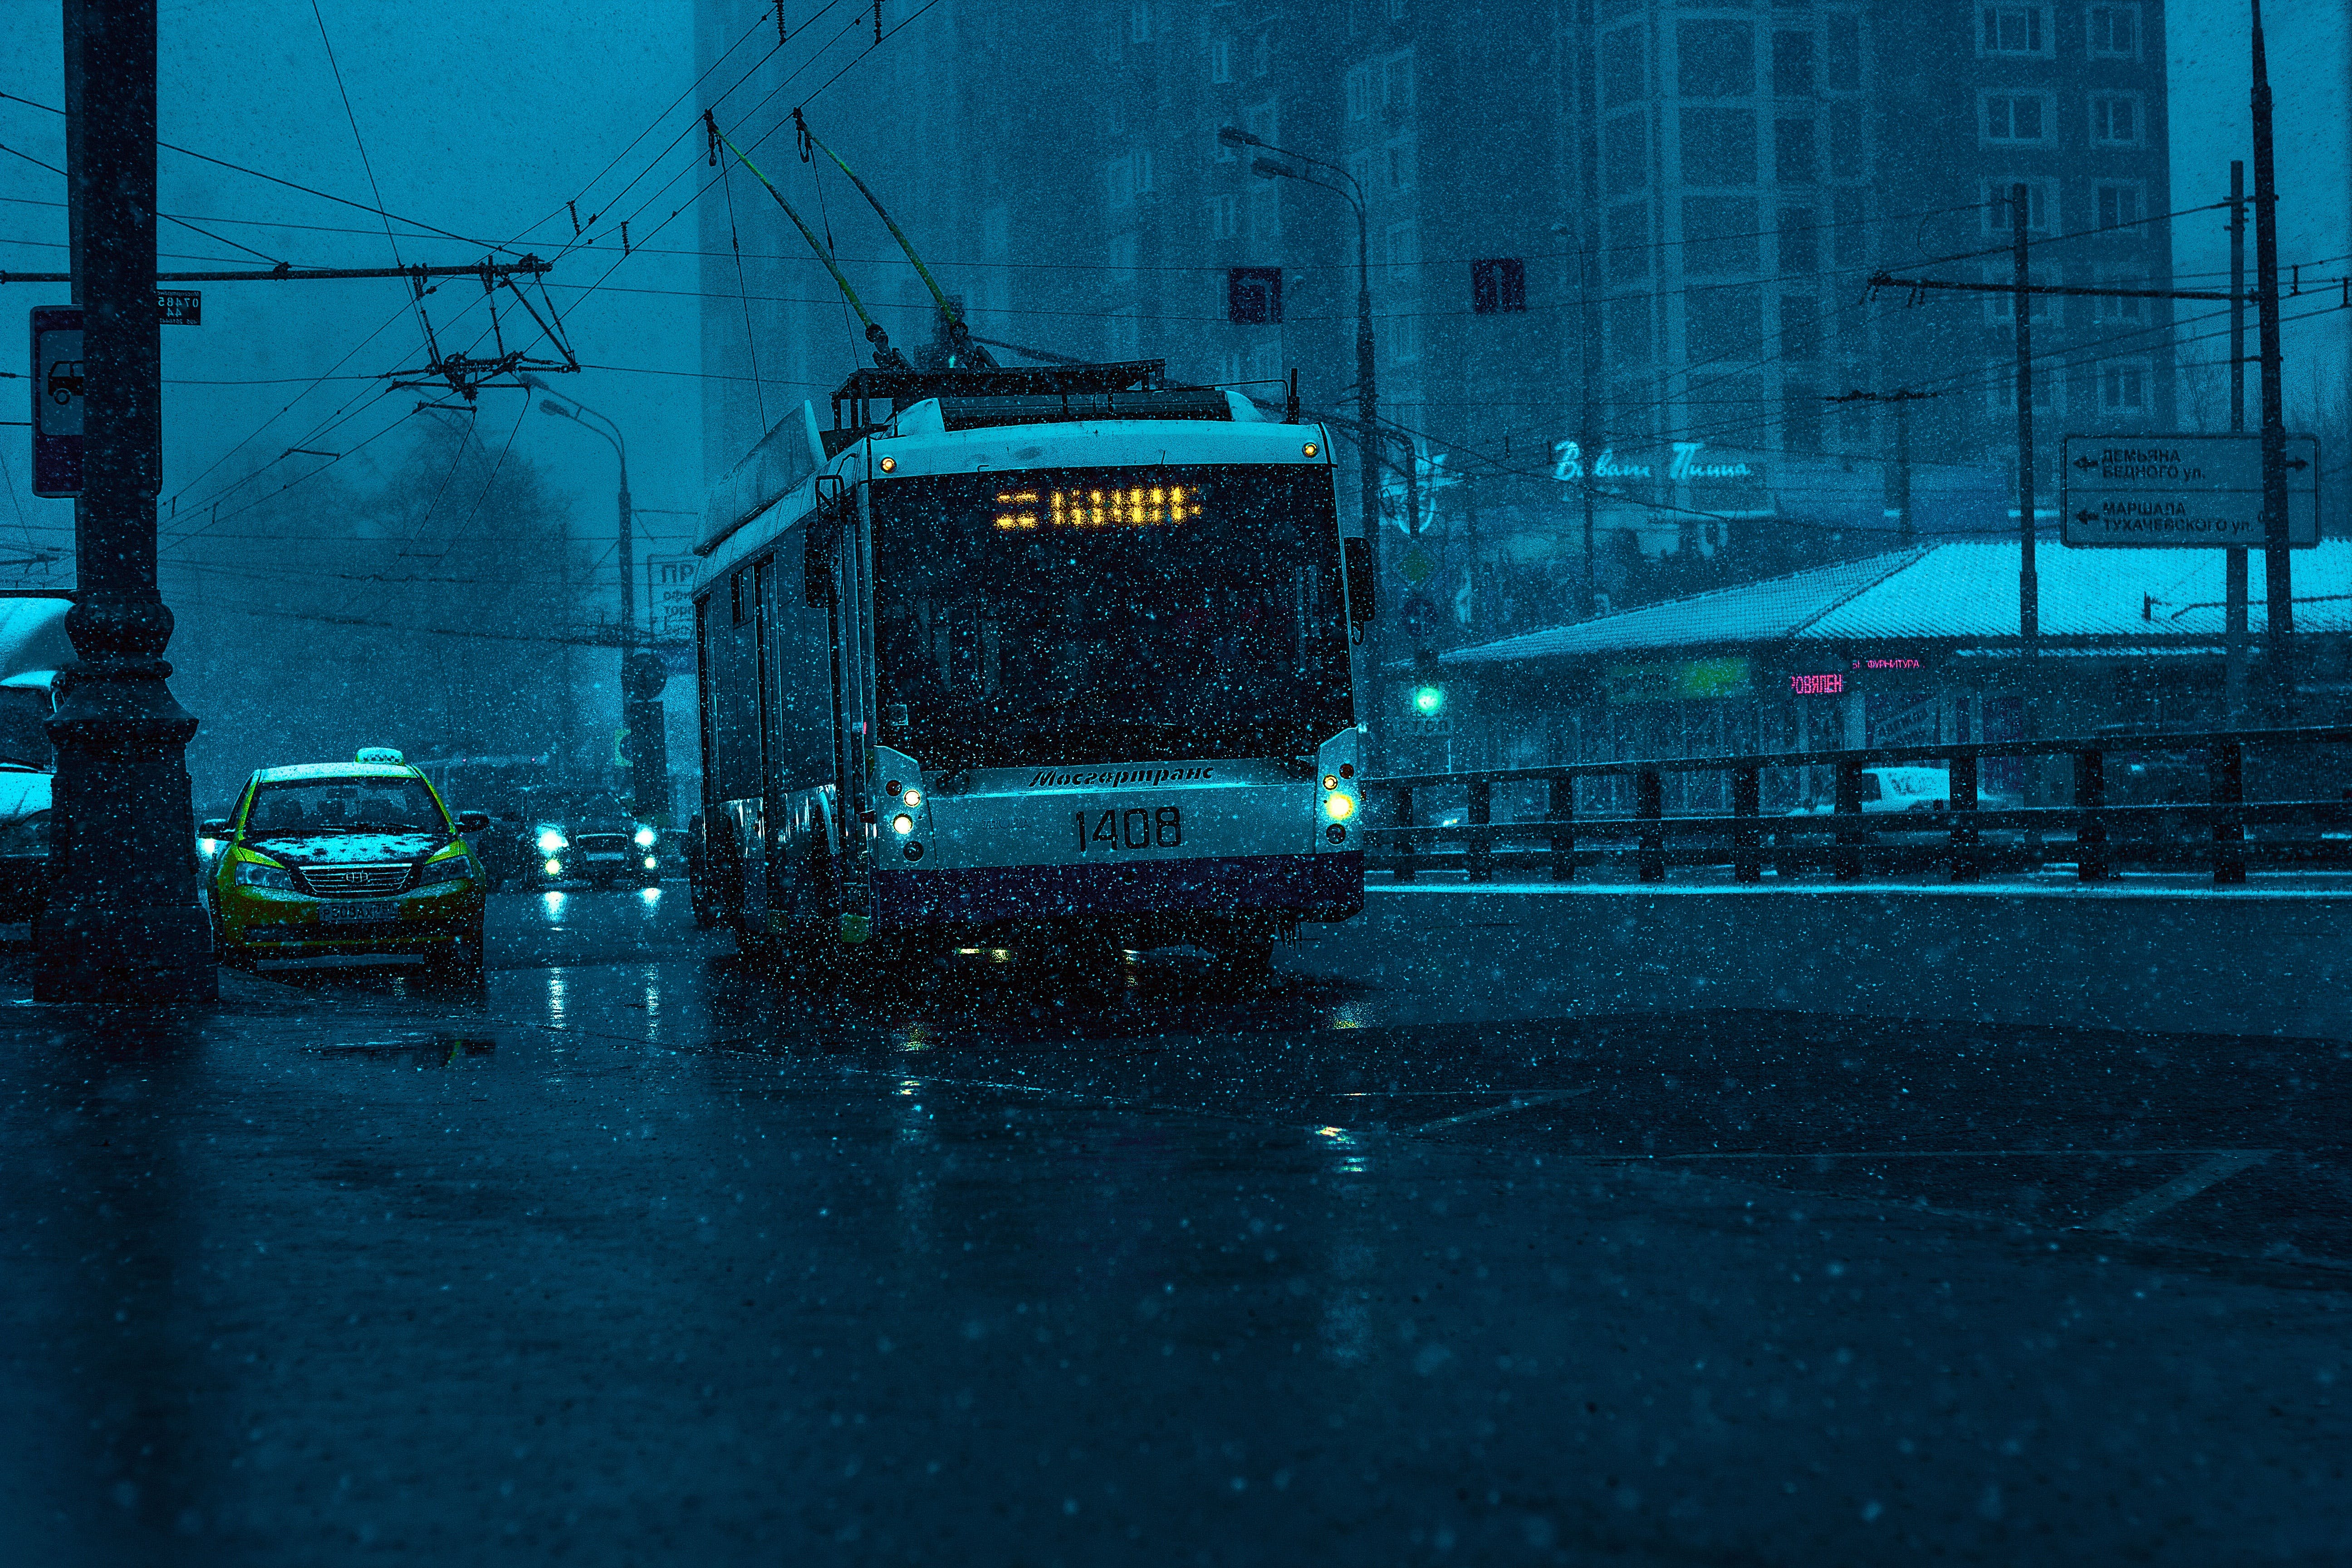 Bus and Gray Car on Road While Raining in City